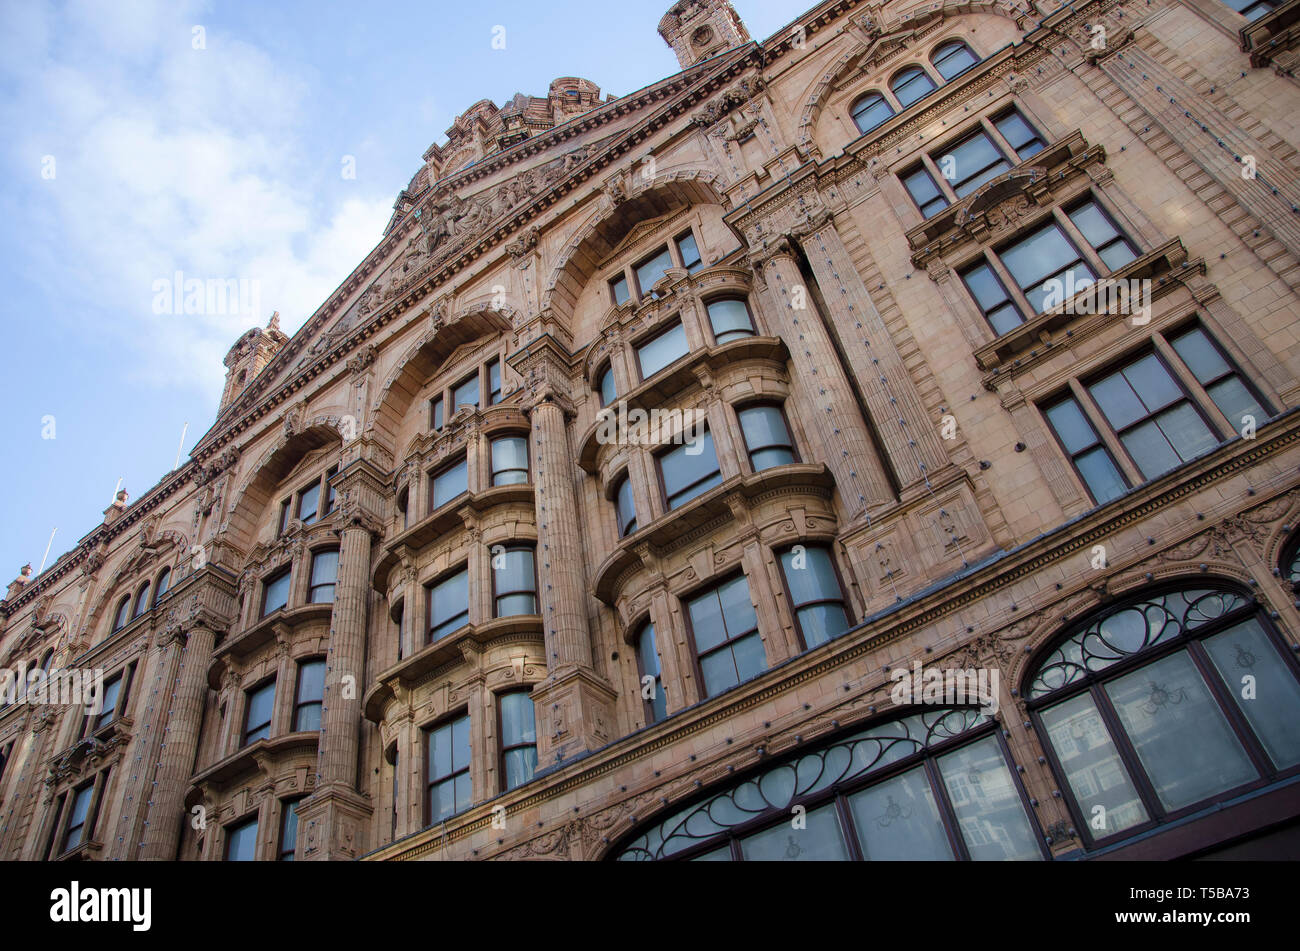 exterior Harrods building shot taken from below - Stock Image